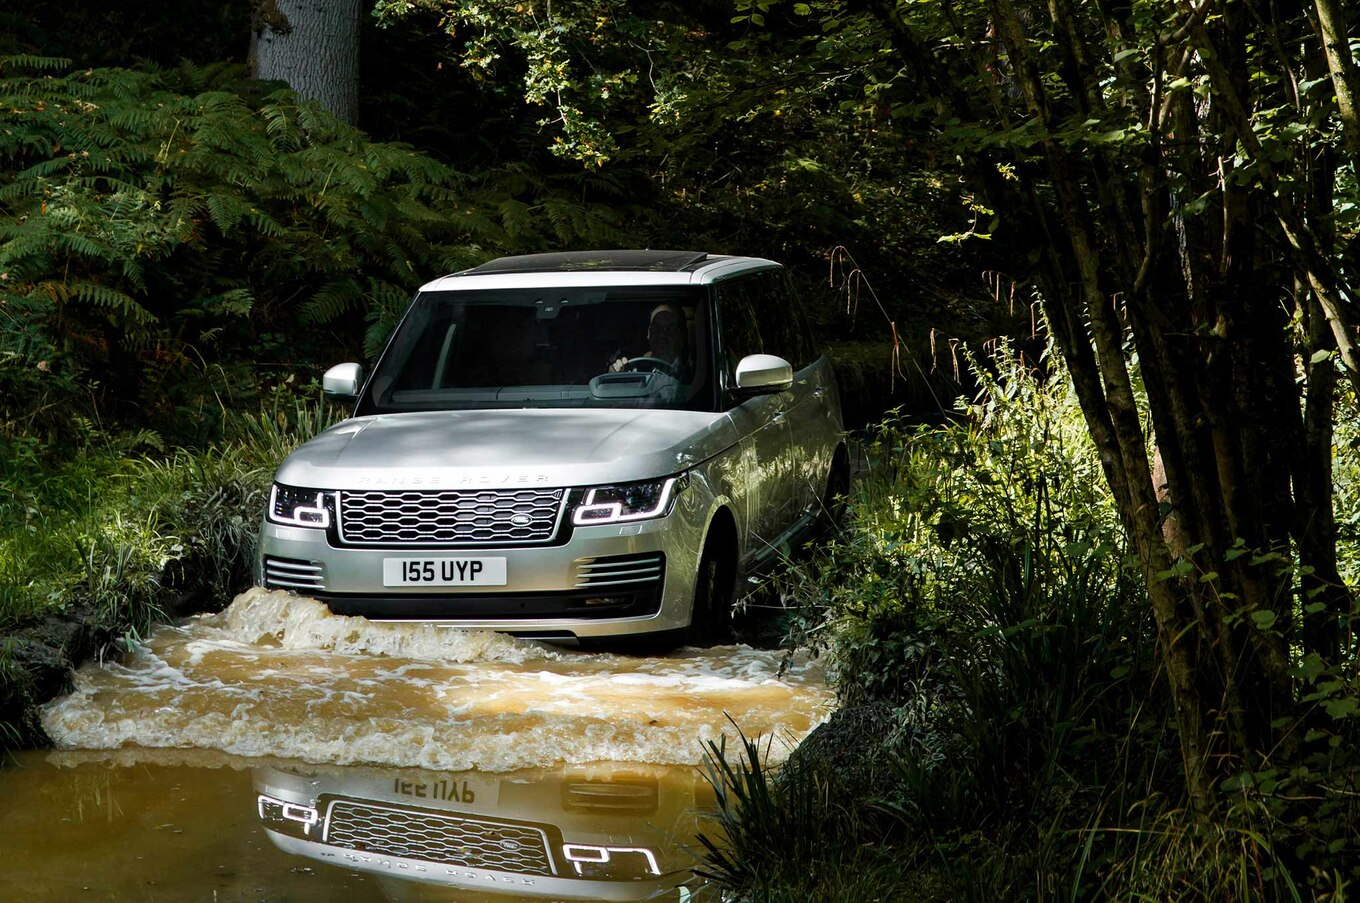 Mileti Industries 2019 Range Rover P400e Can Travel 31 Miles in